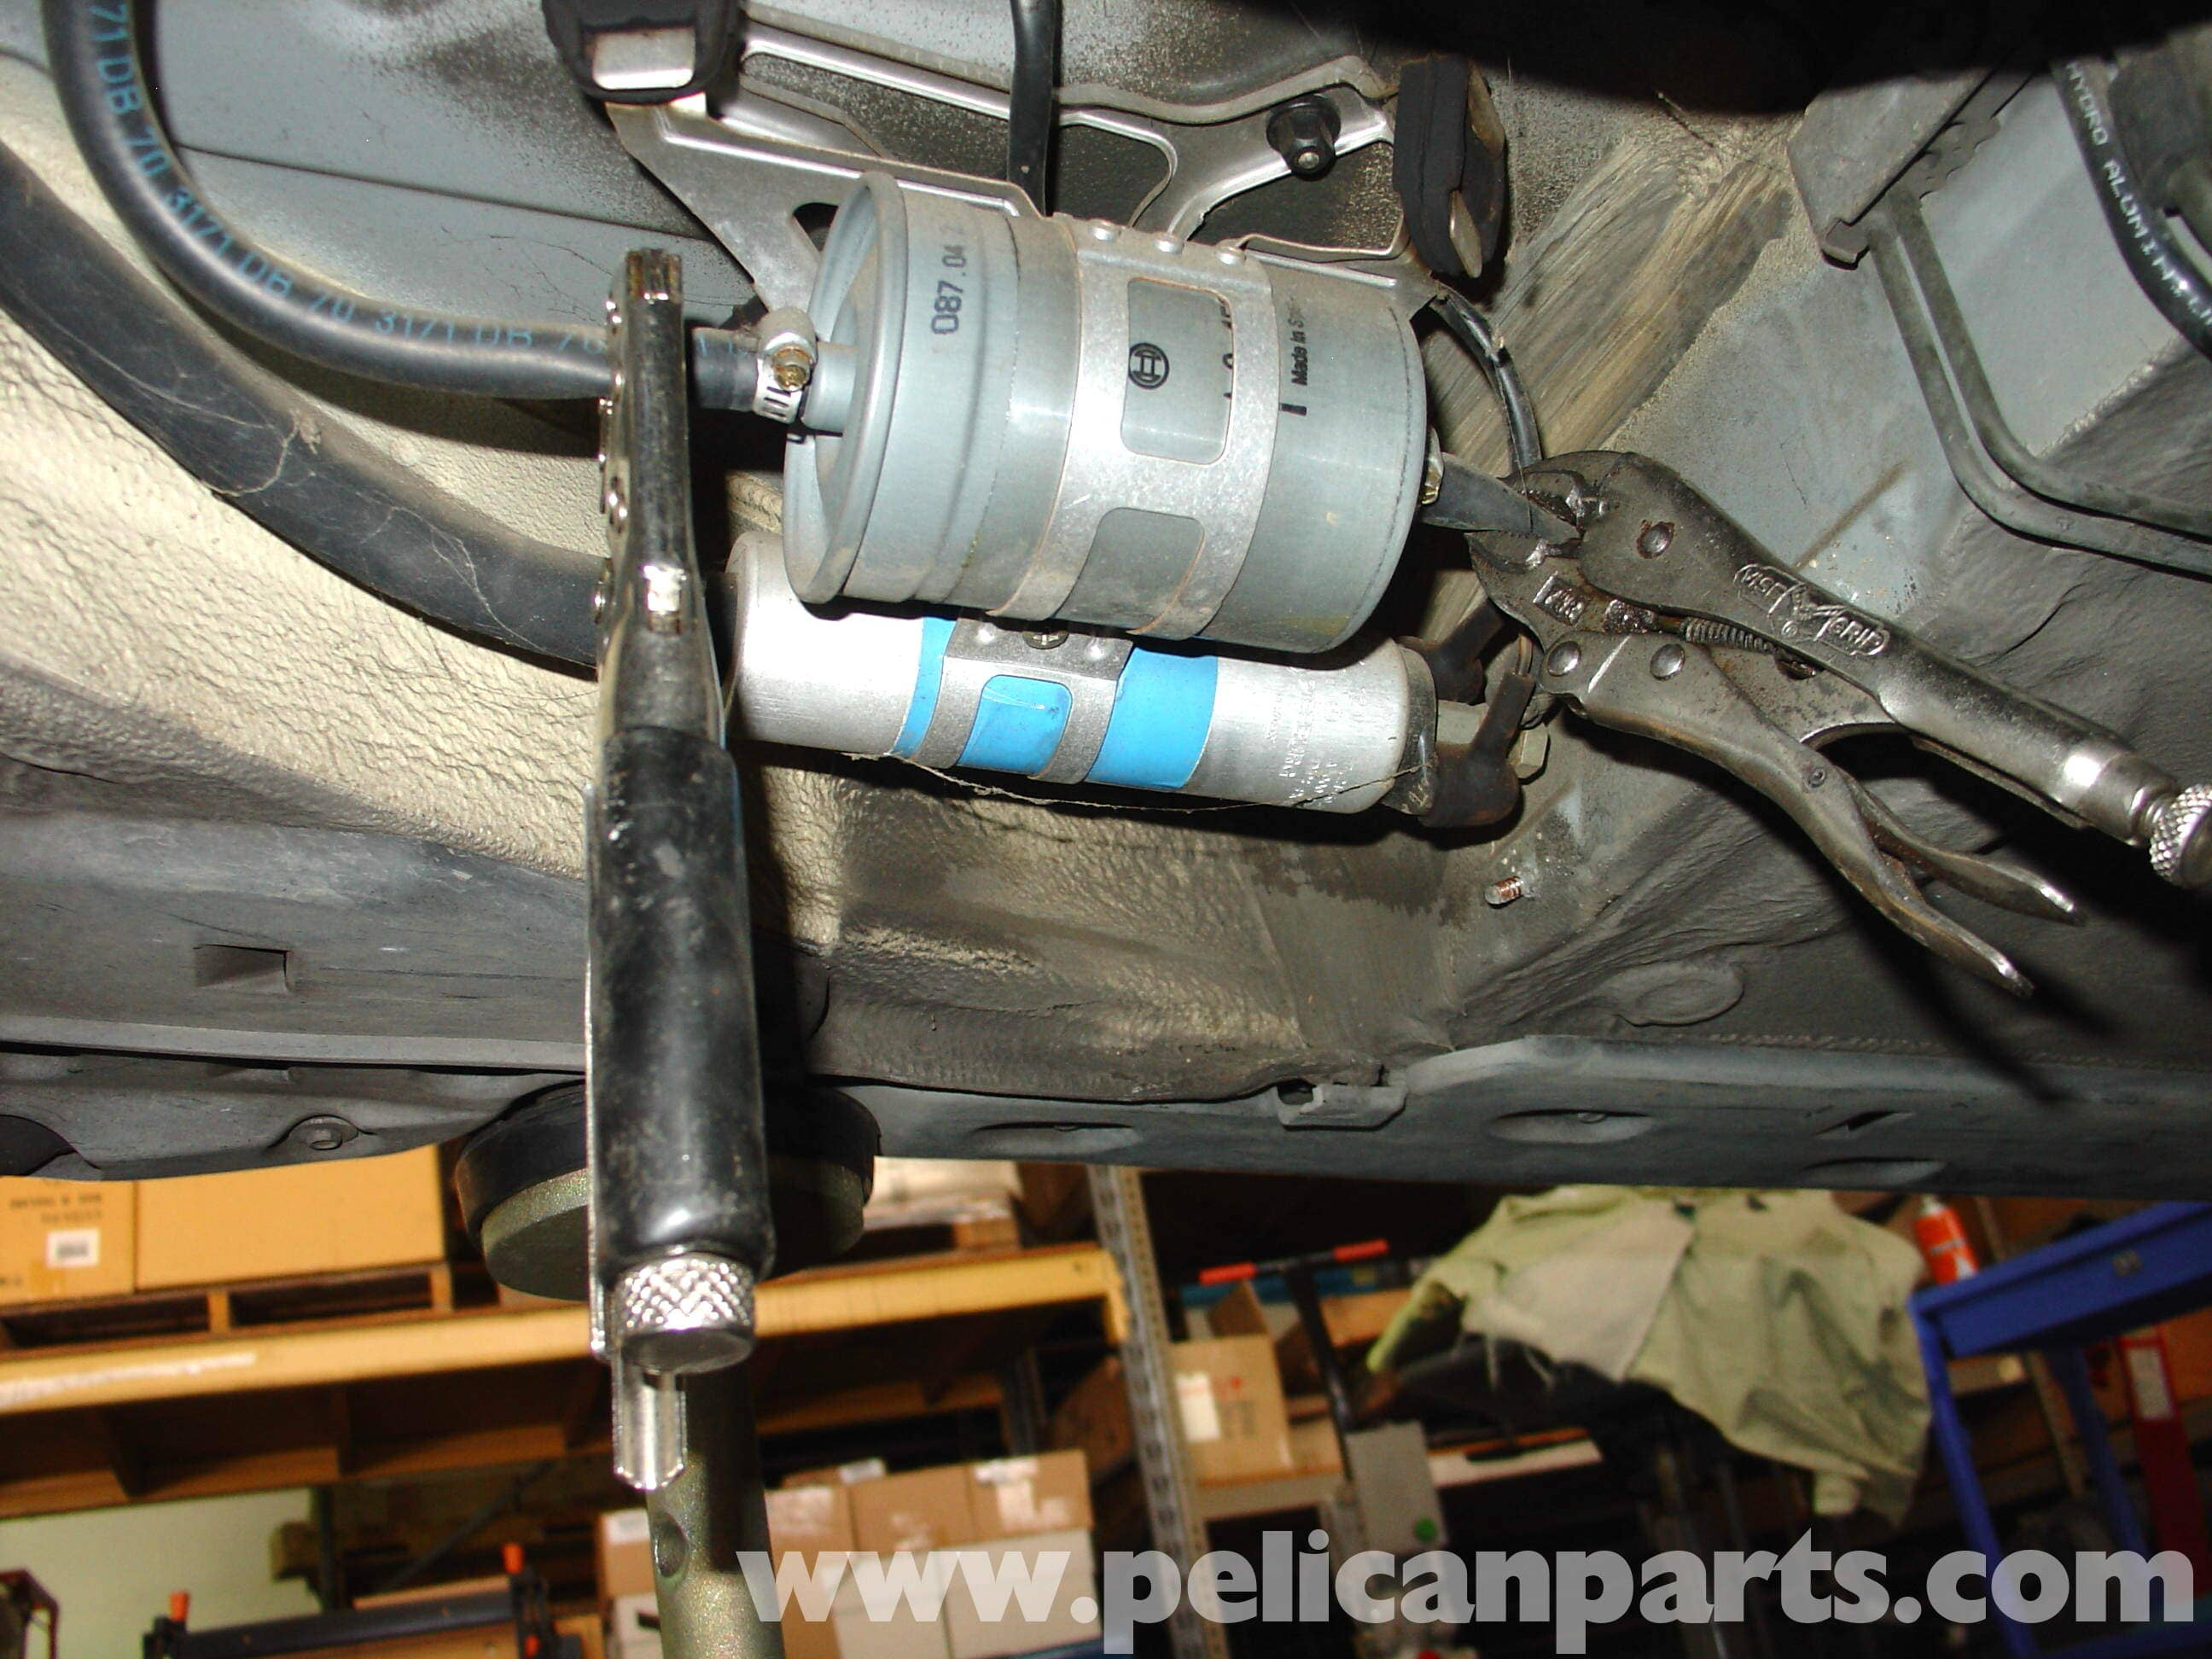 WRG-8679] 2003 Chevy Impala Fuel Filter Location on cruze fuel filter, silverado fuel coupler, silverado dirty air filter, suburban fuel filter, silverado fuel pressure test, silverado fuel system, silverado air filter replacement, silverado cab filter, f350 super duty fuel filter, silverado fuel pump relay, aveo fuel filter, silverado fuel sensor, silverado fuel regulator, tundra fuel filter, silverado fuel vapor, silverado transmission filter, sport trac fuel filter, silverado fuel line, impala fuel filter, corvette fuel filter,